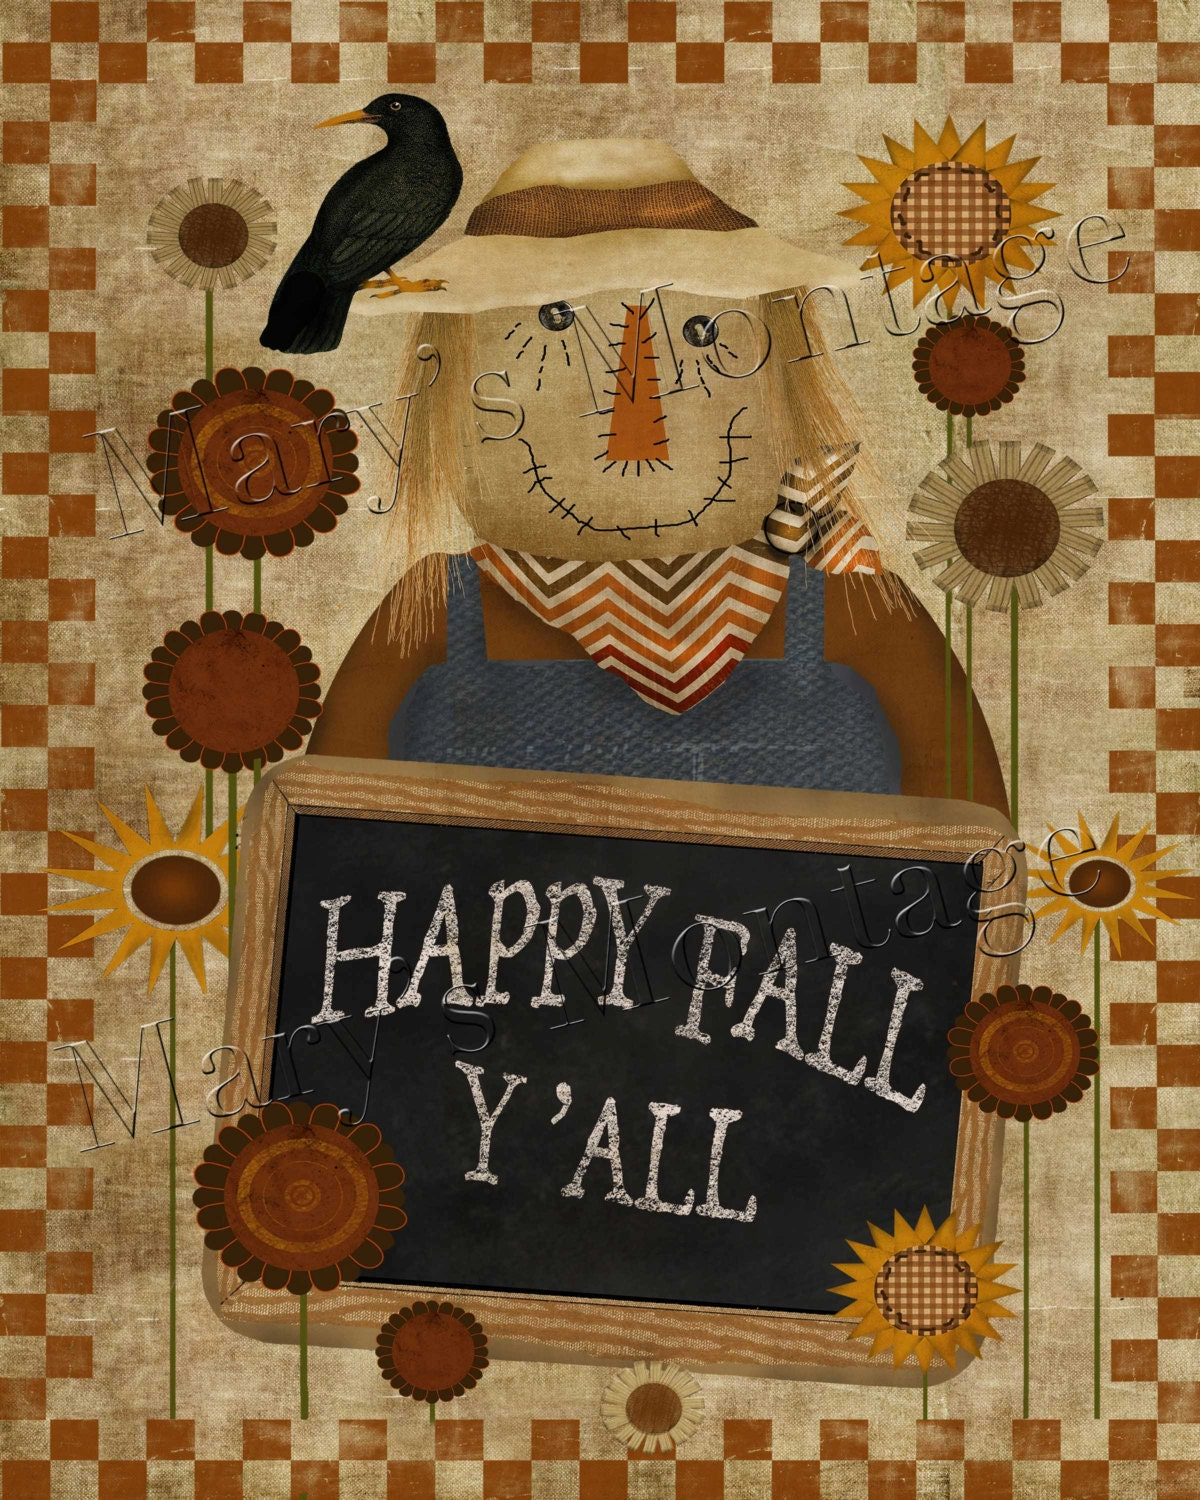 It's just a photo of Universal Happy Fall Yall Printable